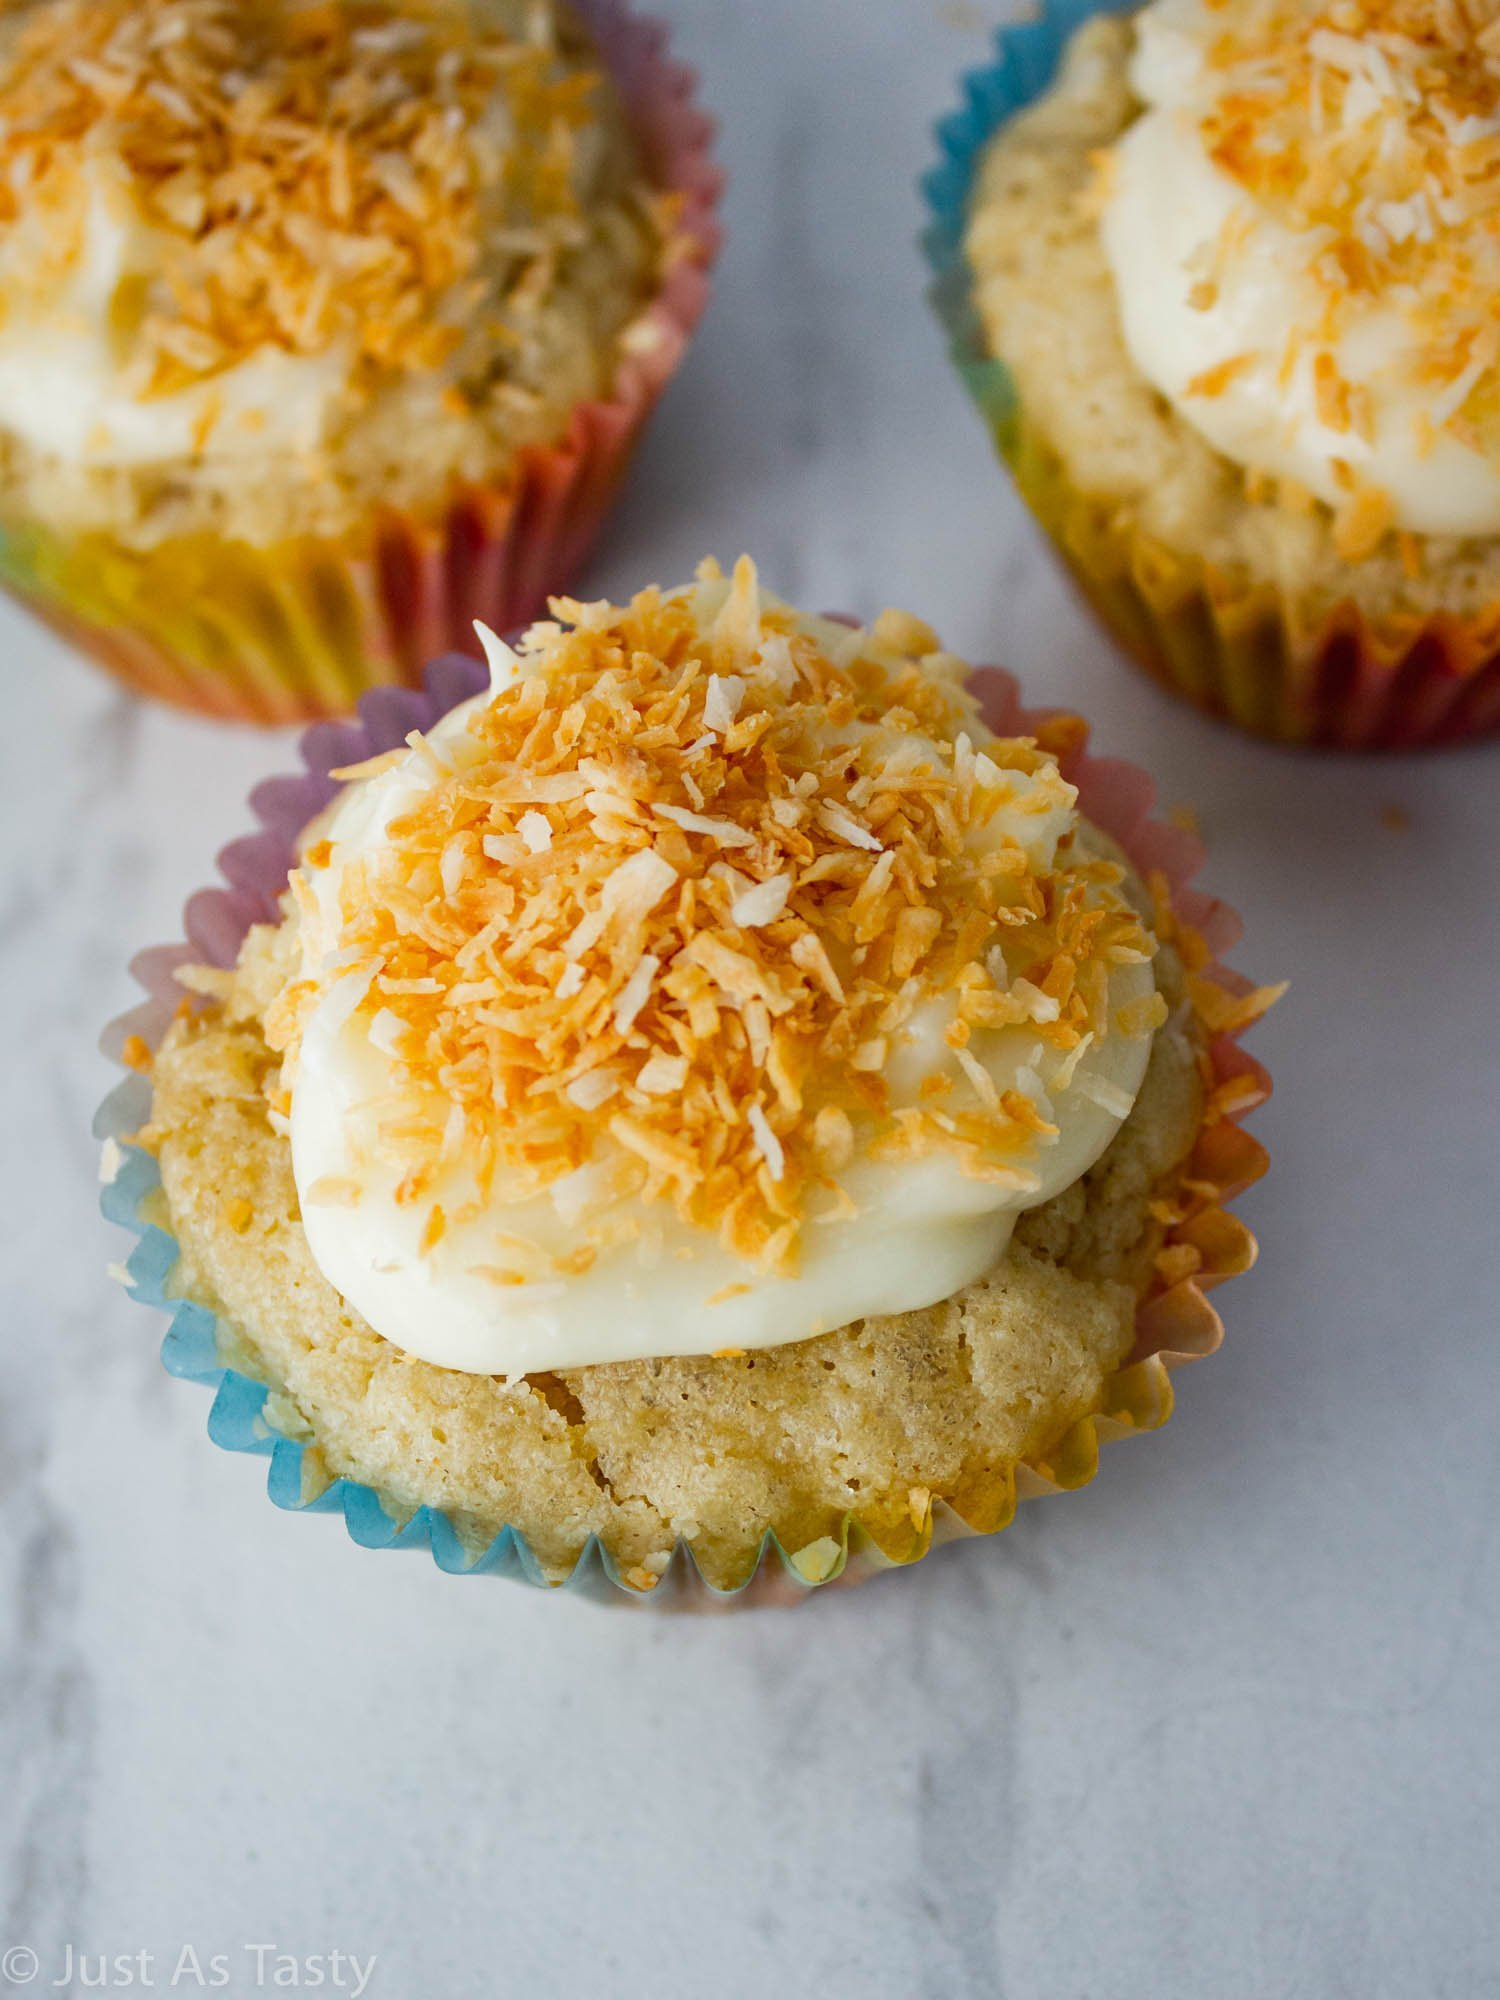 Close-up of a frosted coconut cupcake.